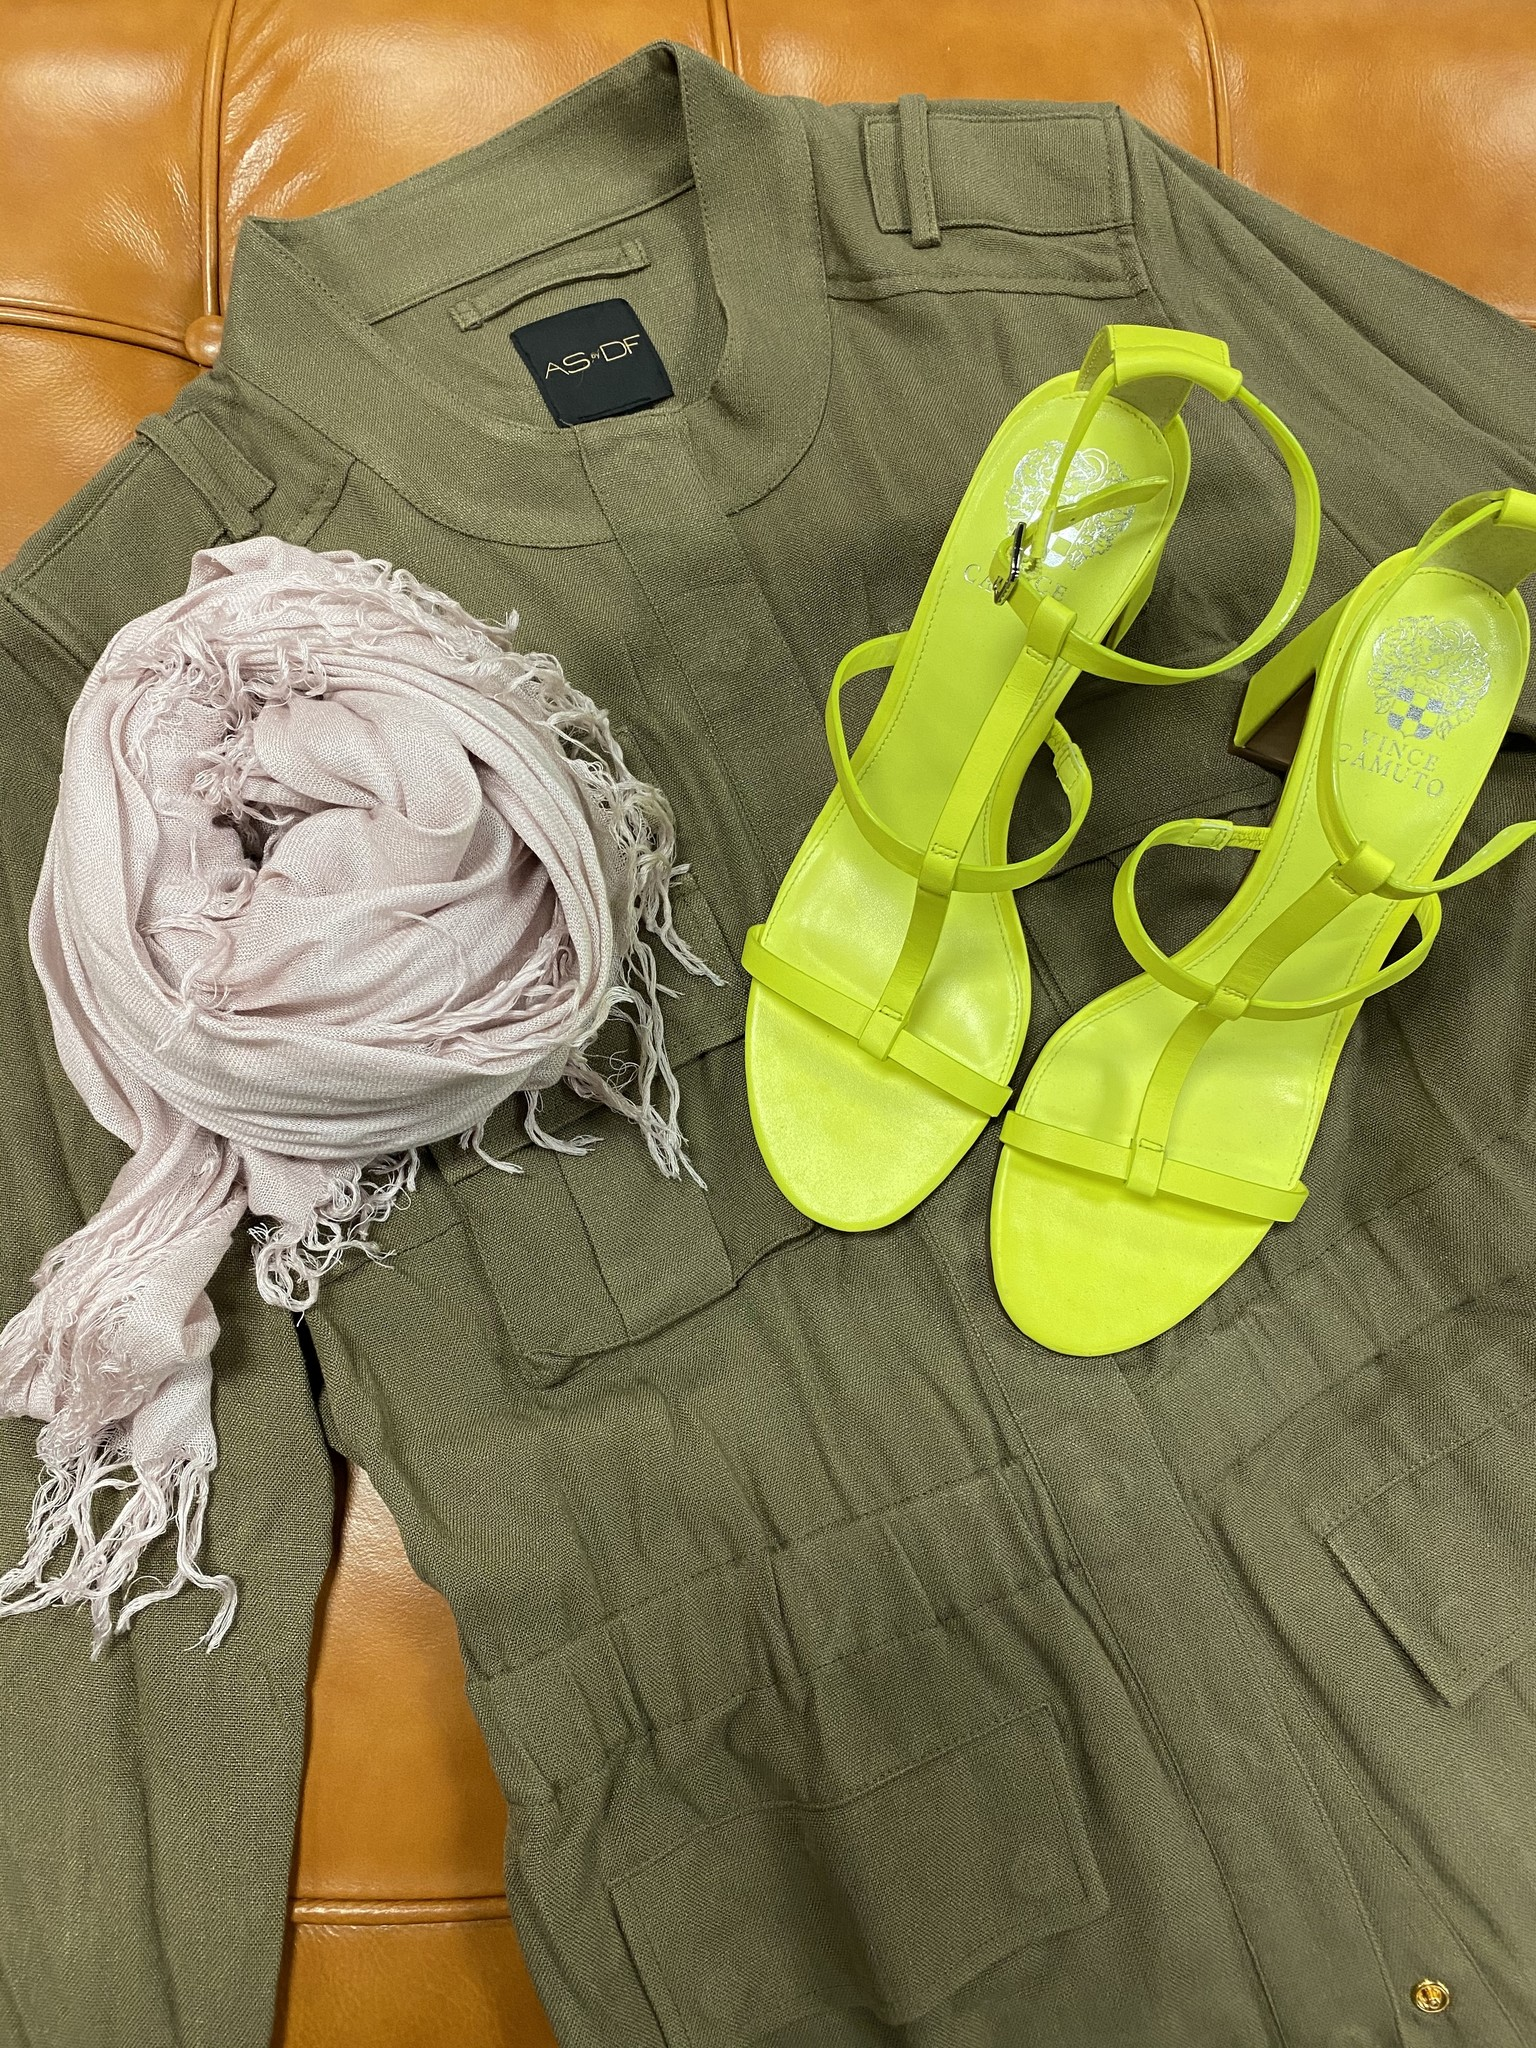 AS by DF military jacket with neon strappy sandals and a pale pink scarf